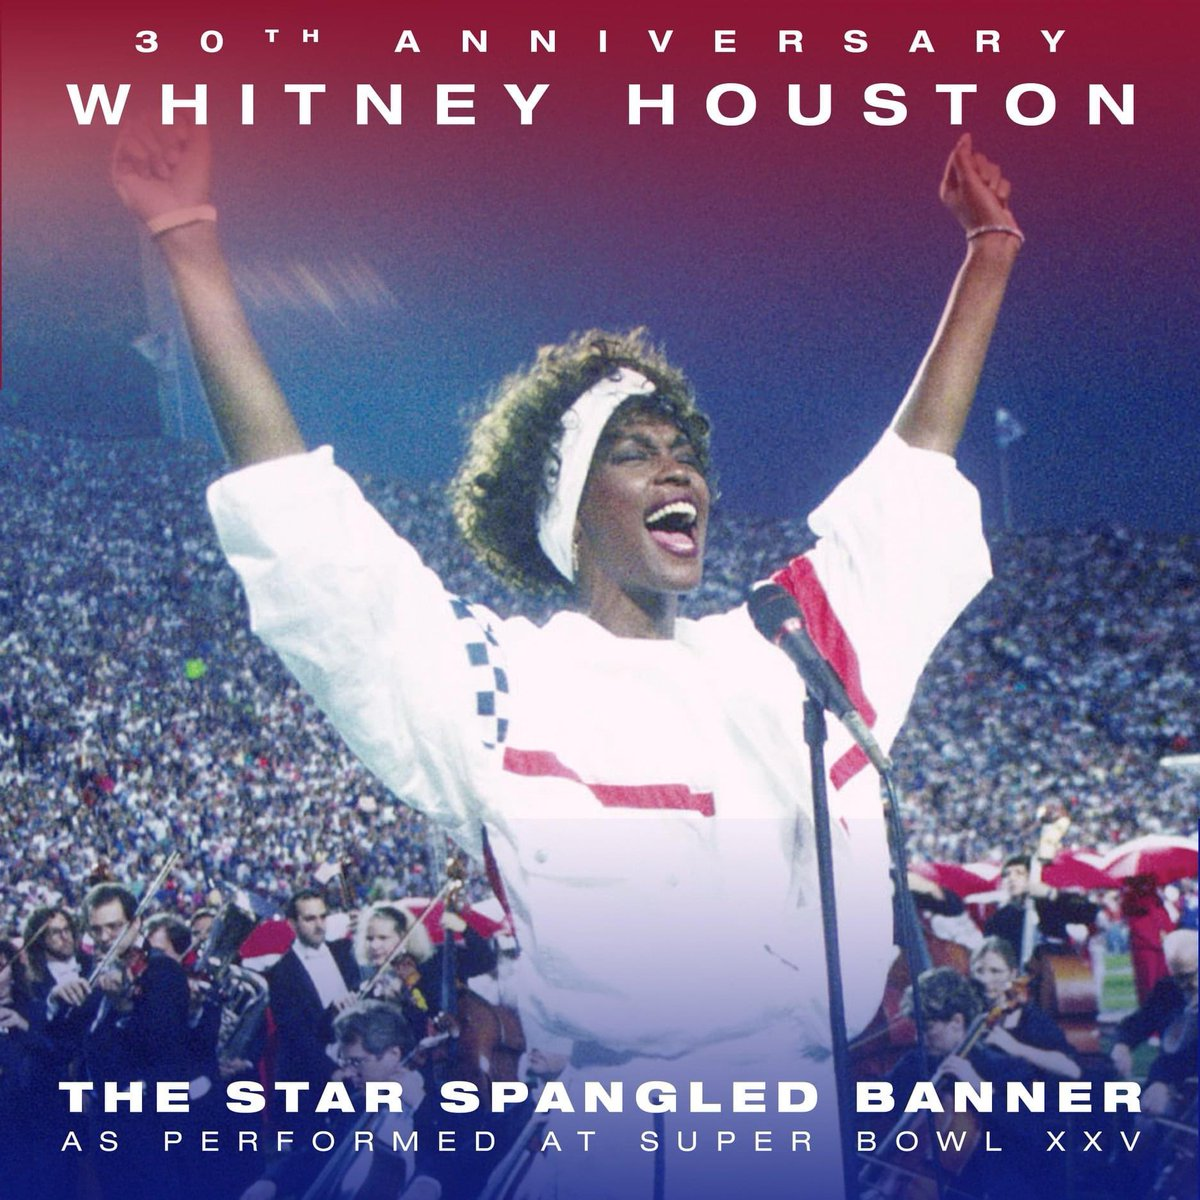 30 years ago today, #WhitneyHouston performed her jaw-dropping interpretation of the #StarSpangledBanner at #SuperBowl XXV.  Whitney's arrangement set the bar ridiculously high, impossibly high. No one has come close to her take on the anthem and no one ever will.  #TheVoice